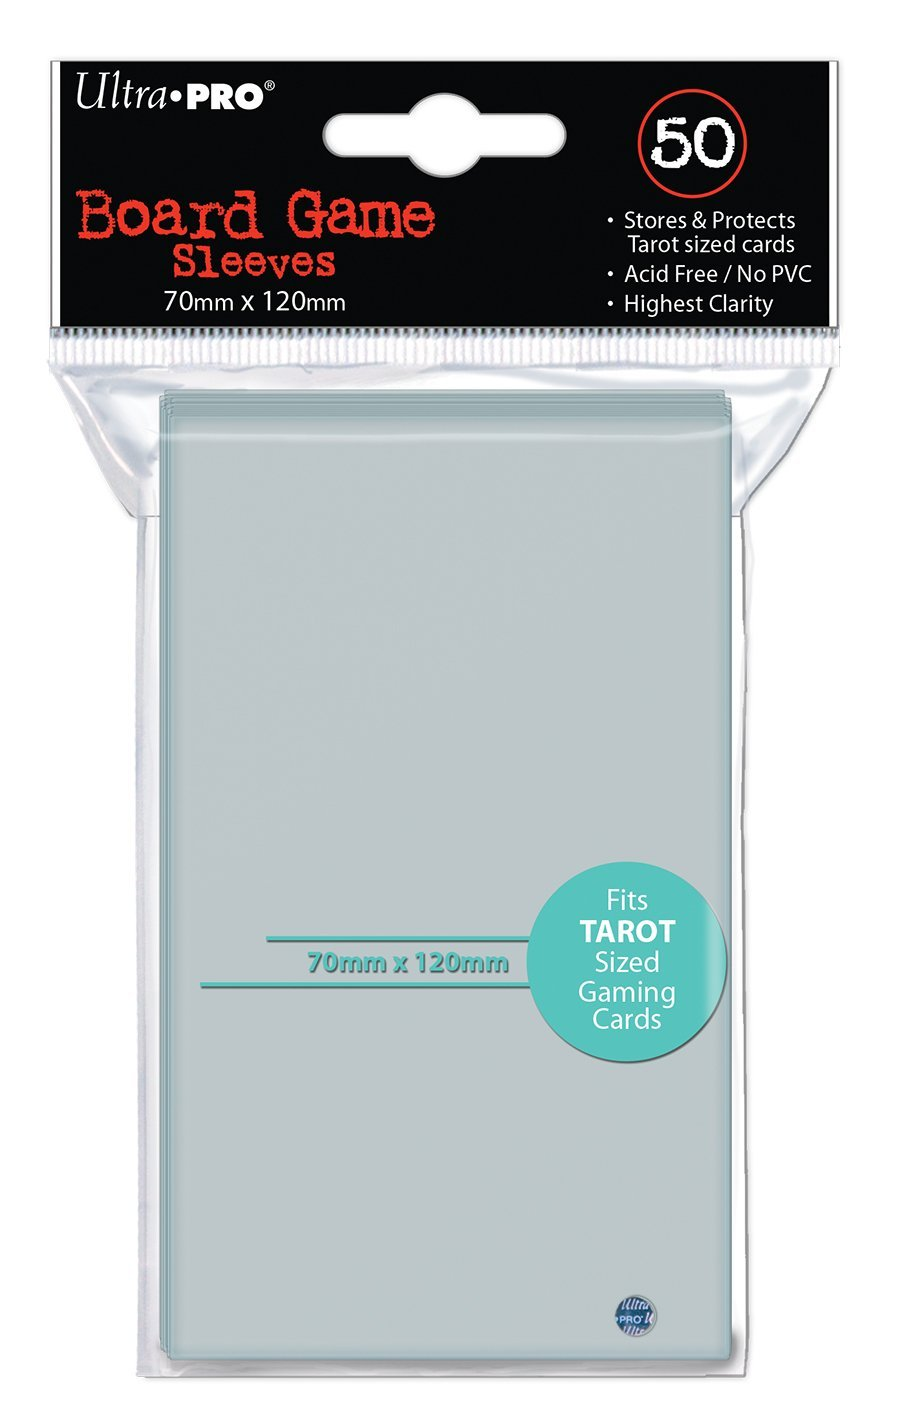 Ultra Pro 70mm X 120mm Tarot Board Game Sleeves 50ct